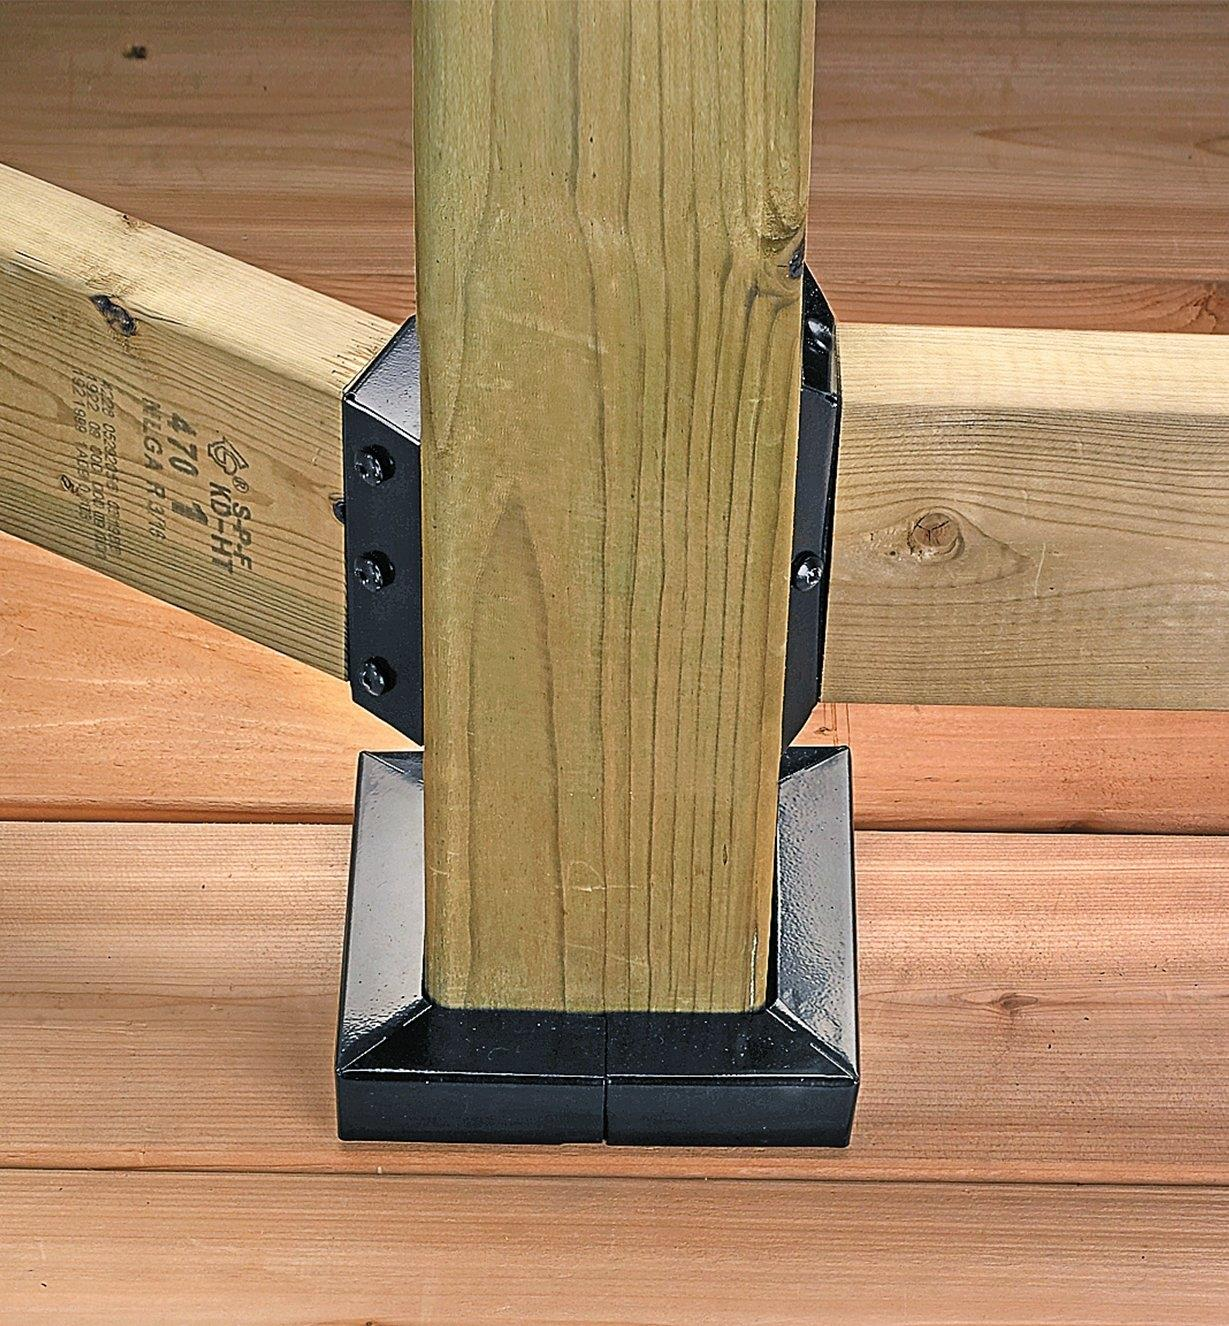 Deck post with anchor and skirt attached